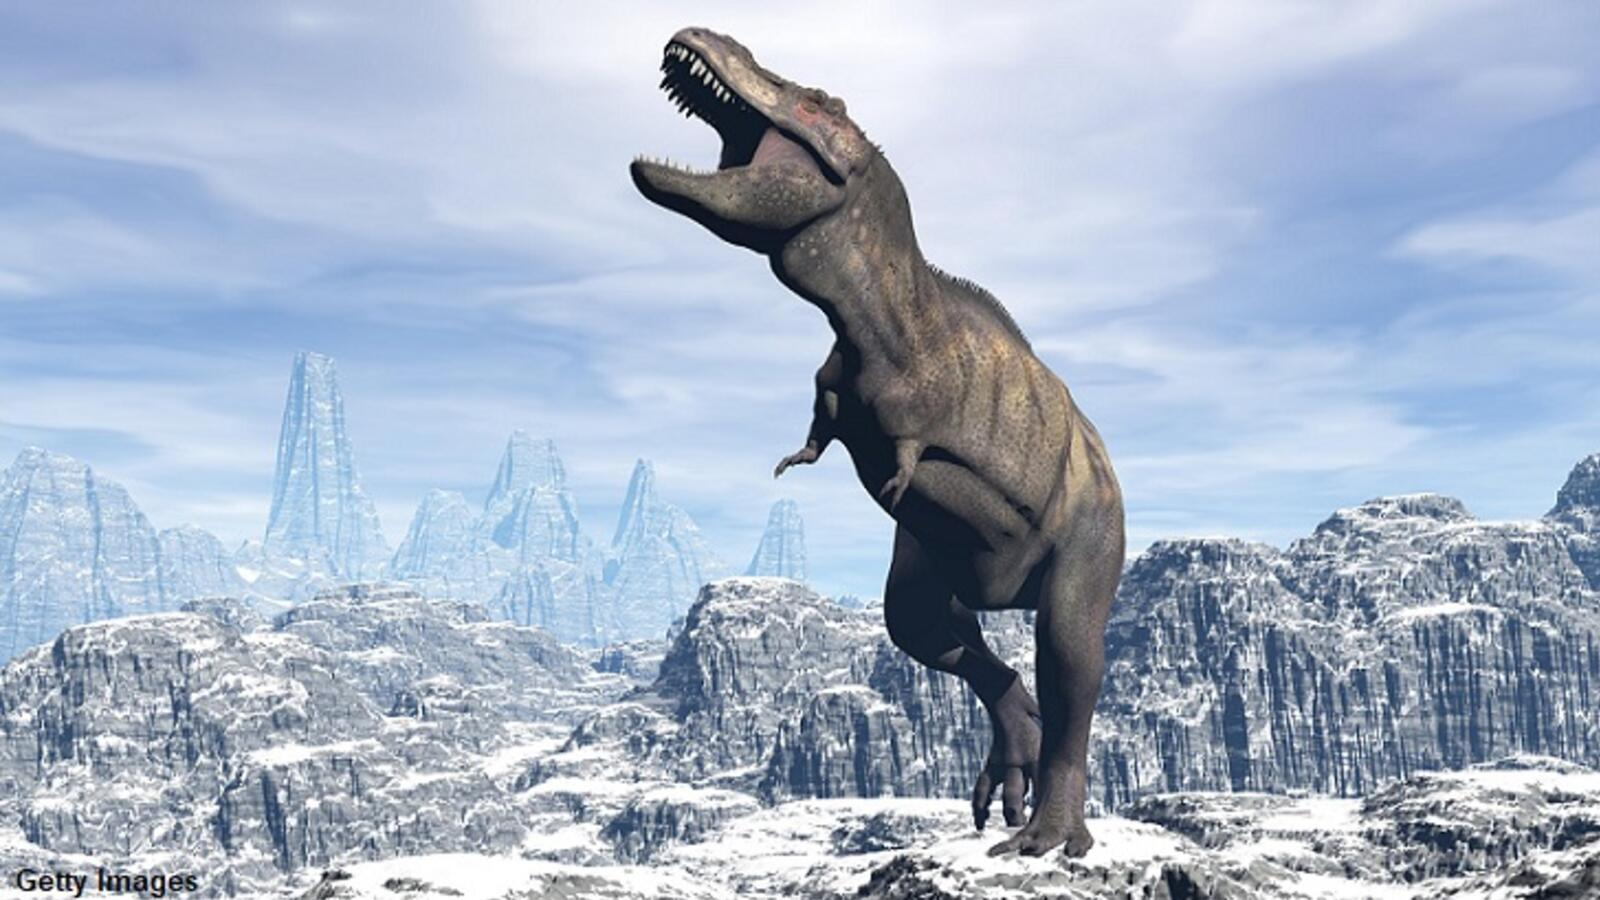 Newly Discovered Fossils Indicate Some Dinosaurs Lived in the Arctic